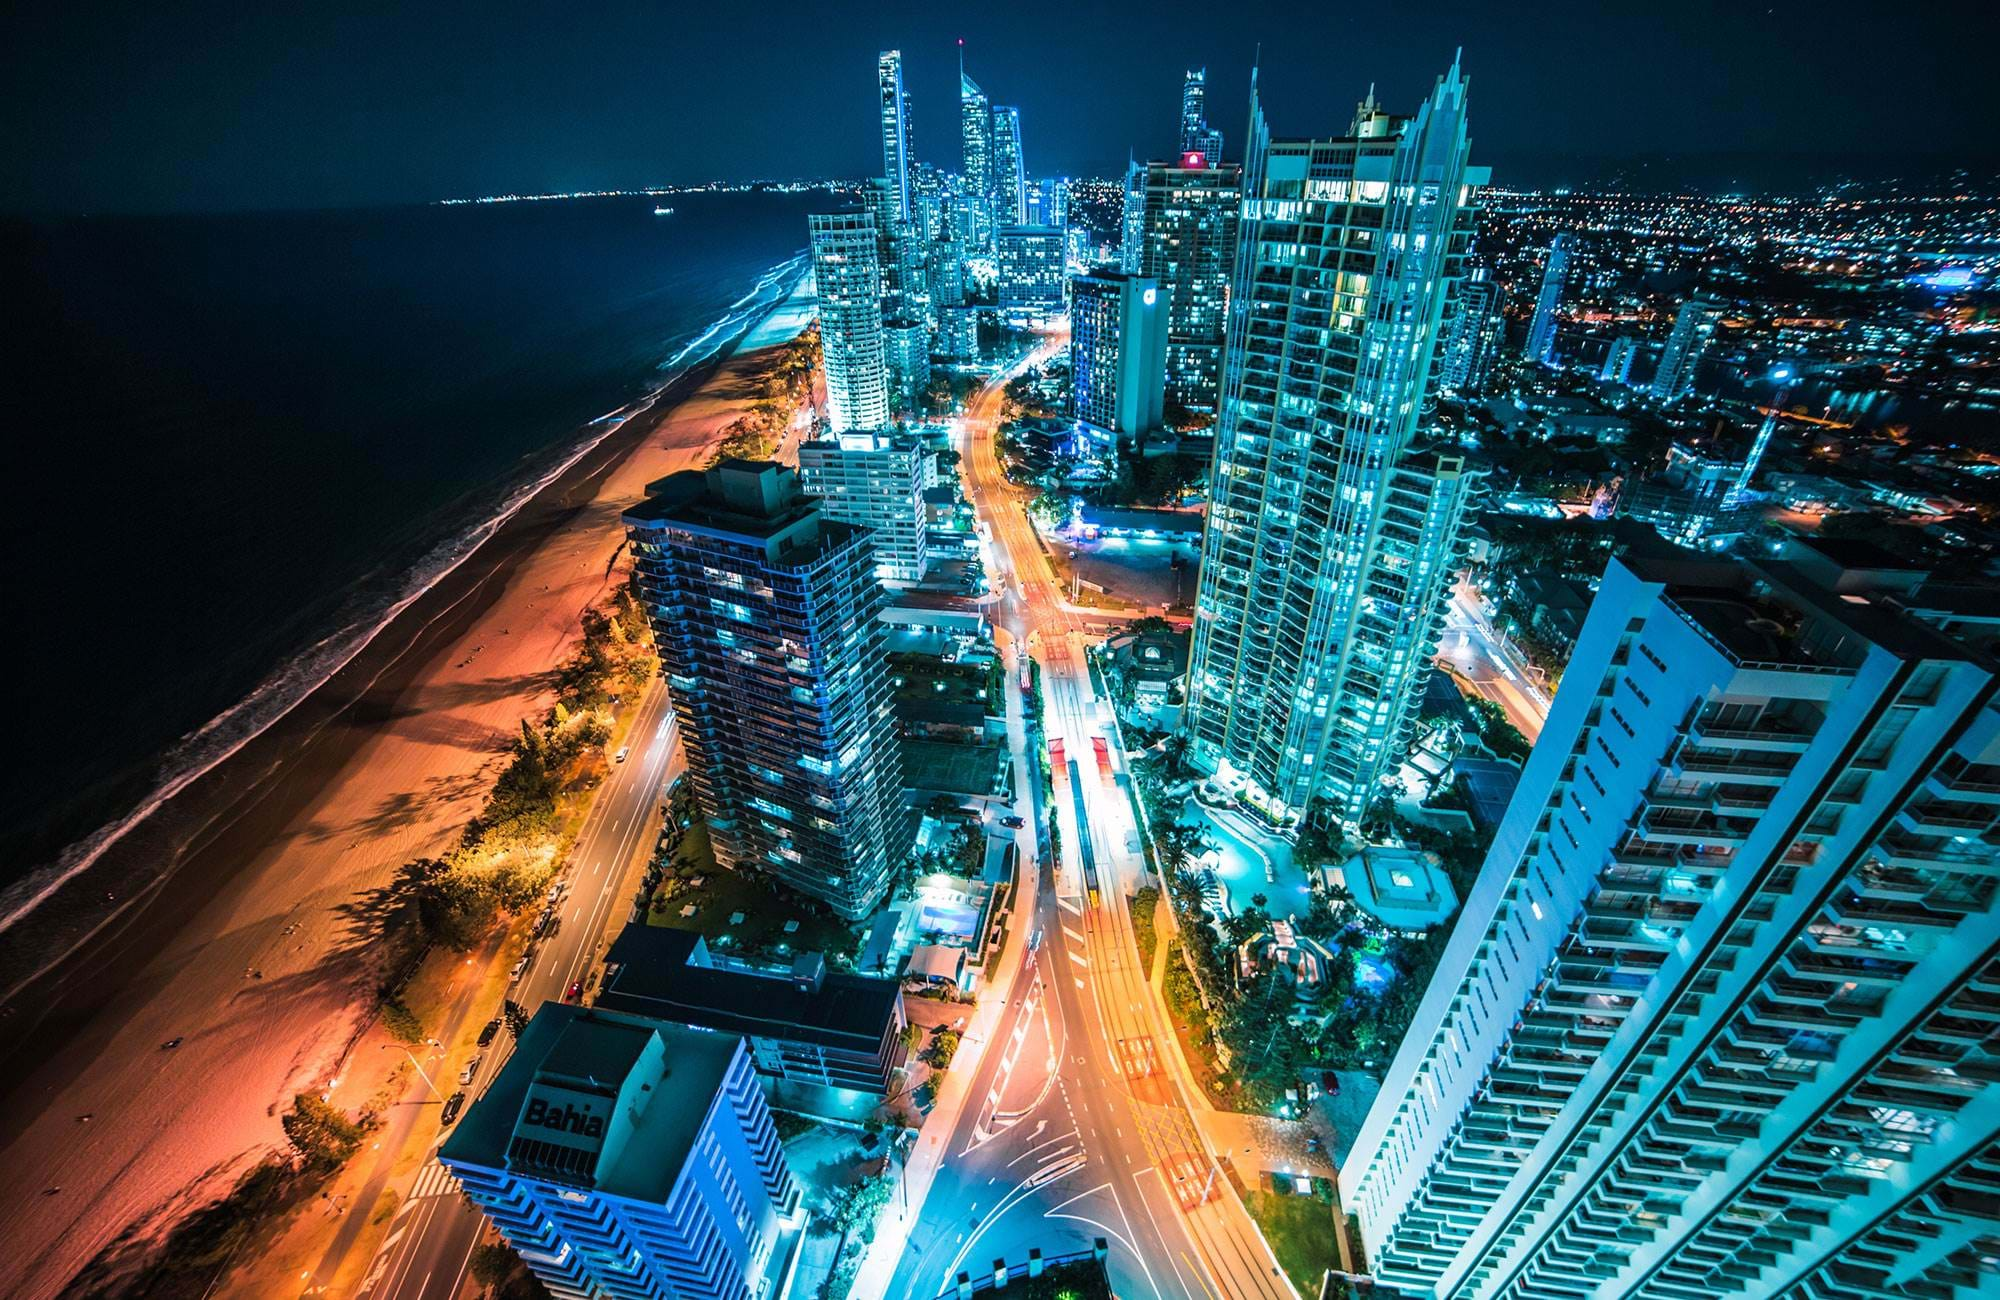 enjoy the nightlife in the gold coast during your studies in gold coast